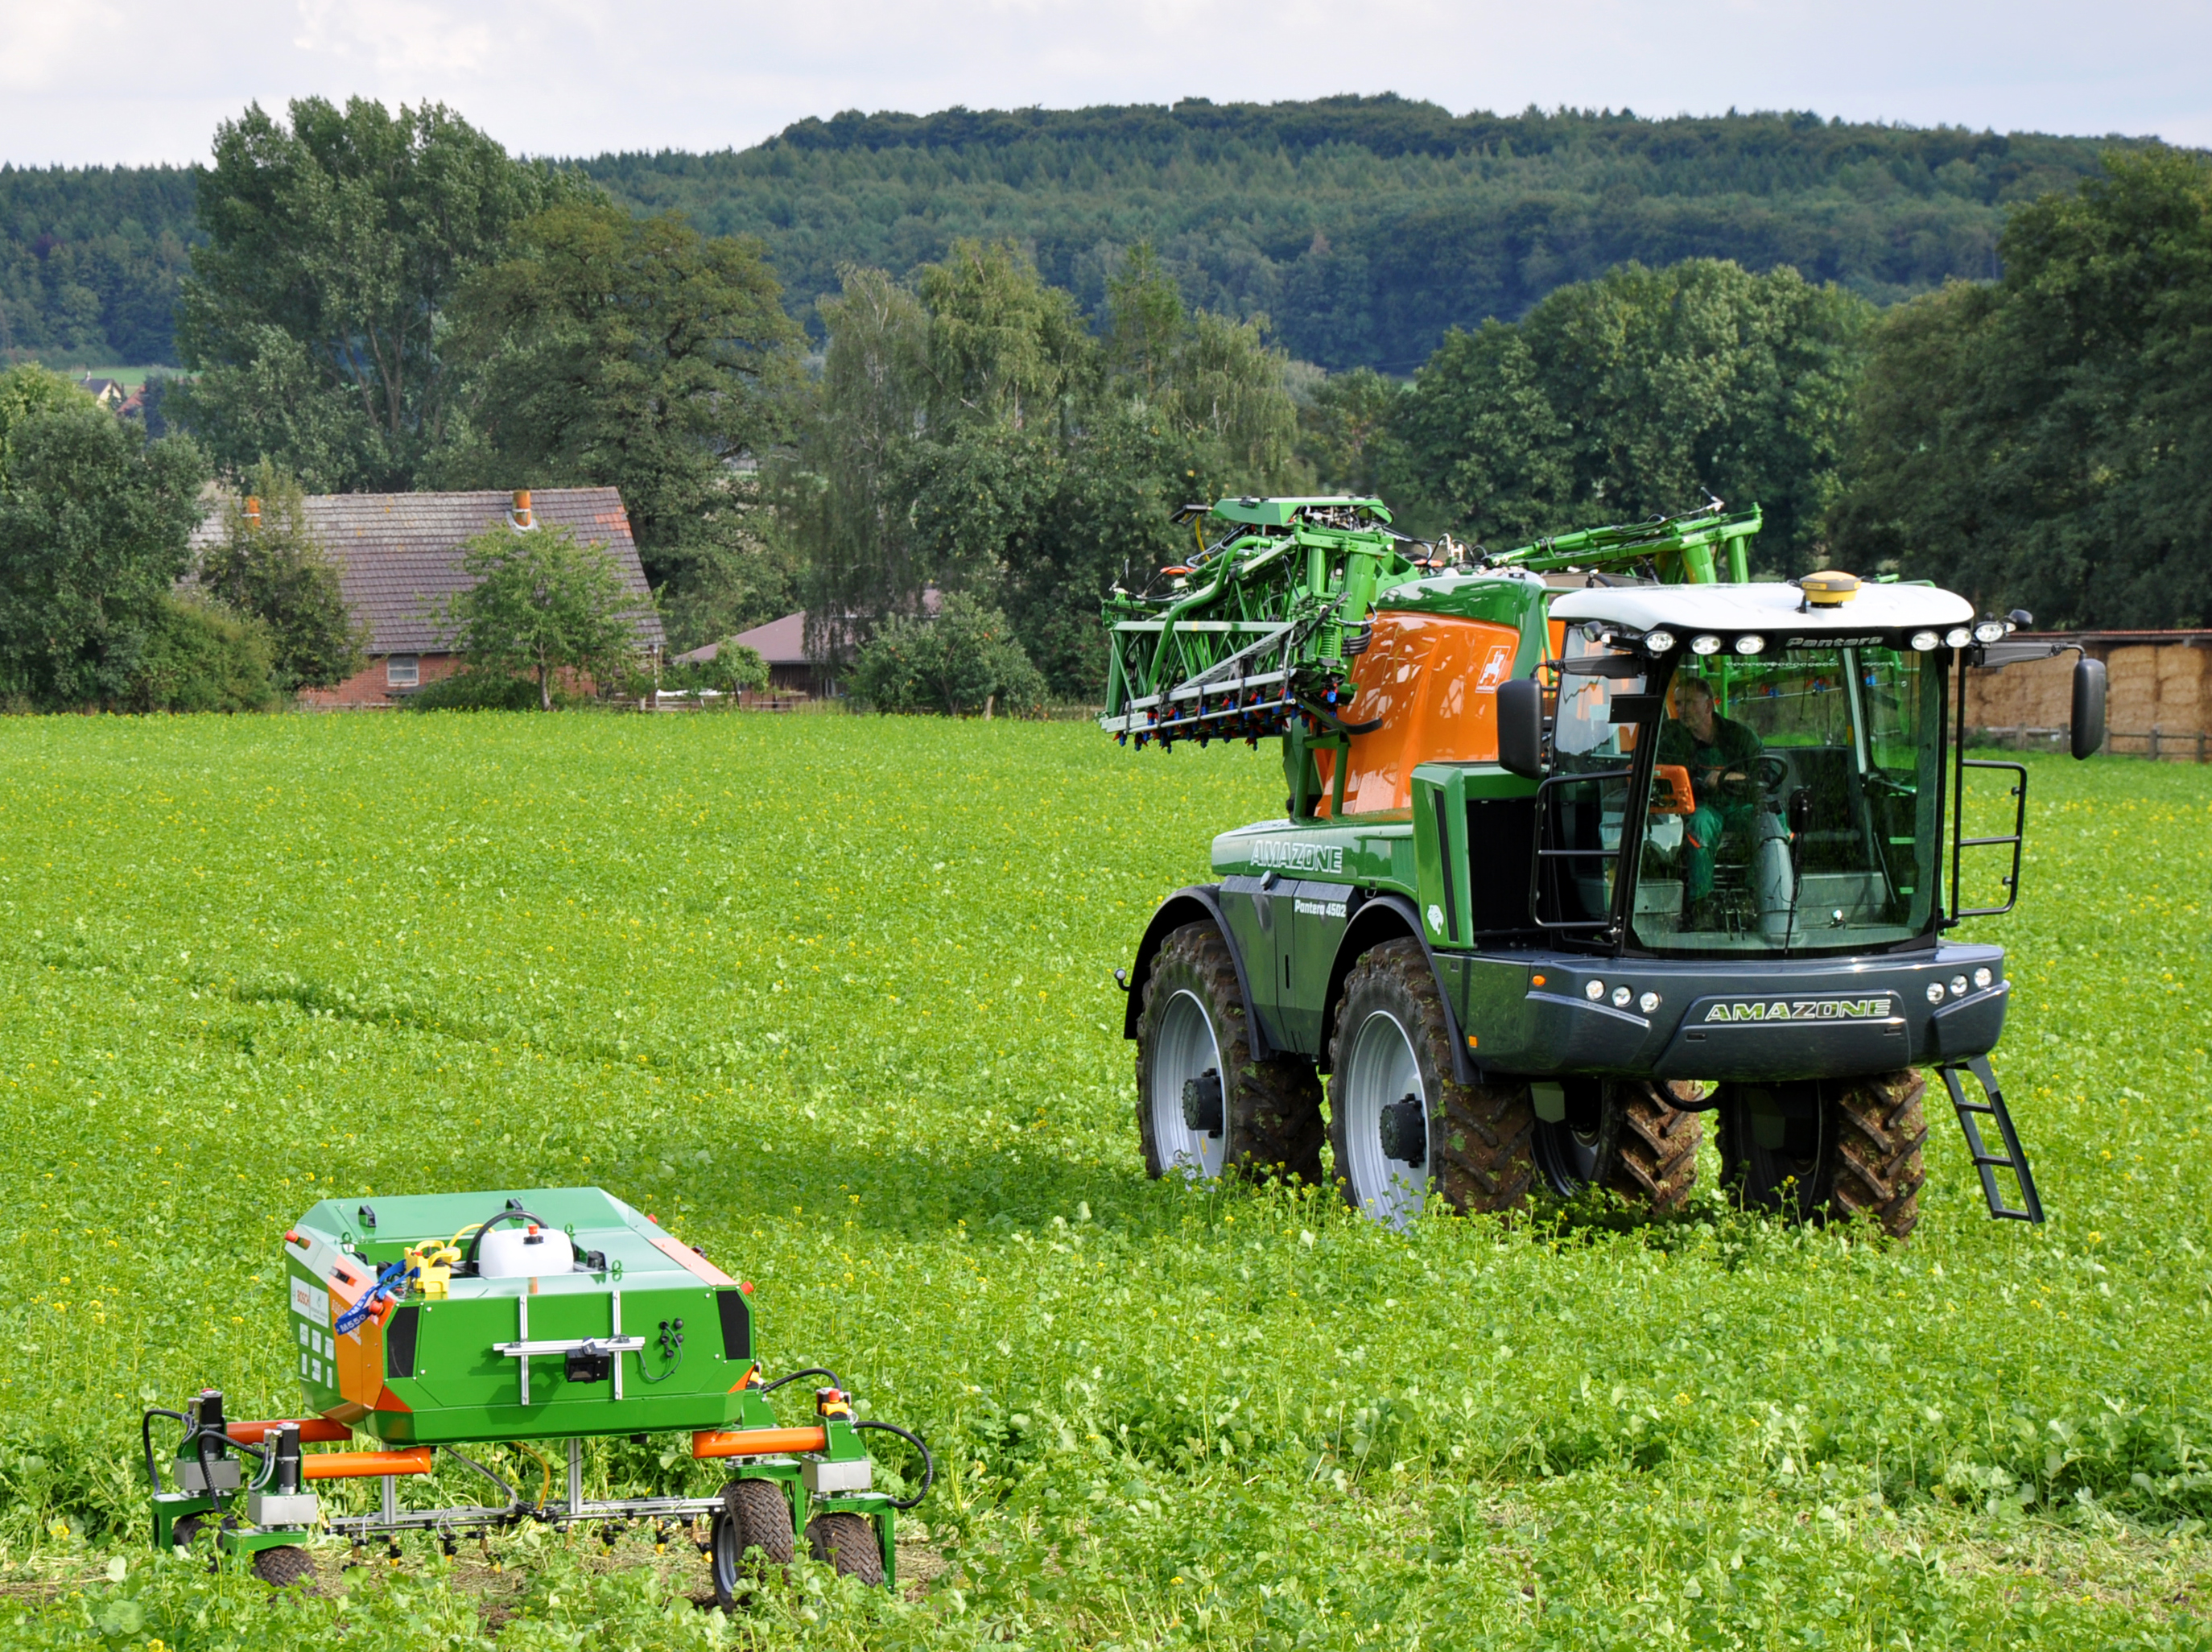 Based on innovative agricultural technology, the Agri-Gaia project explores the use of AI in agriculture. Copyright: Hochschule Osnabrück